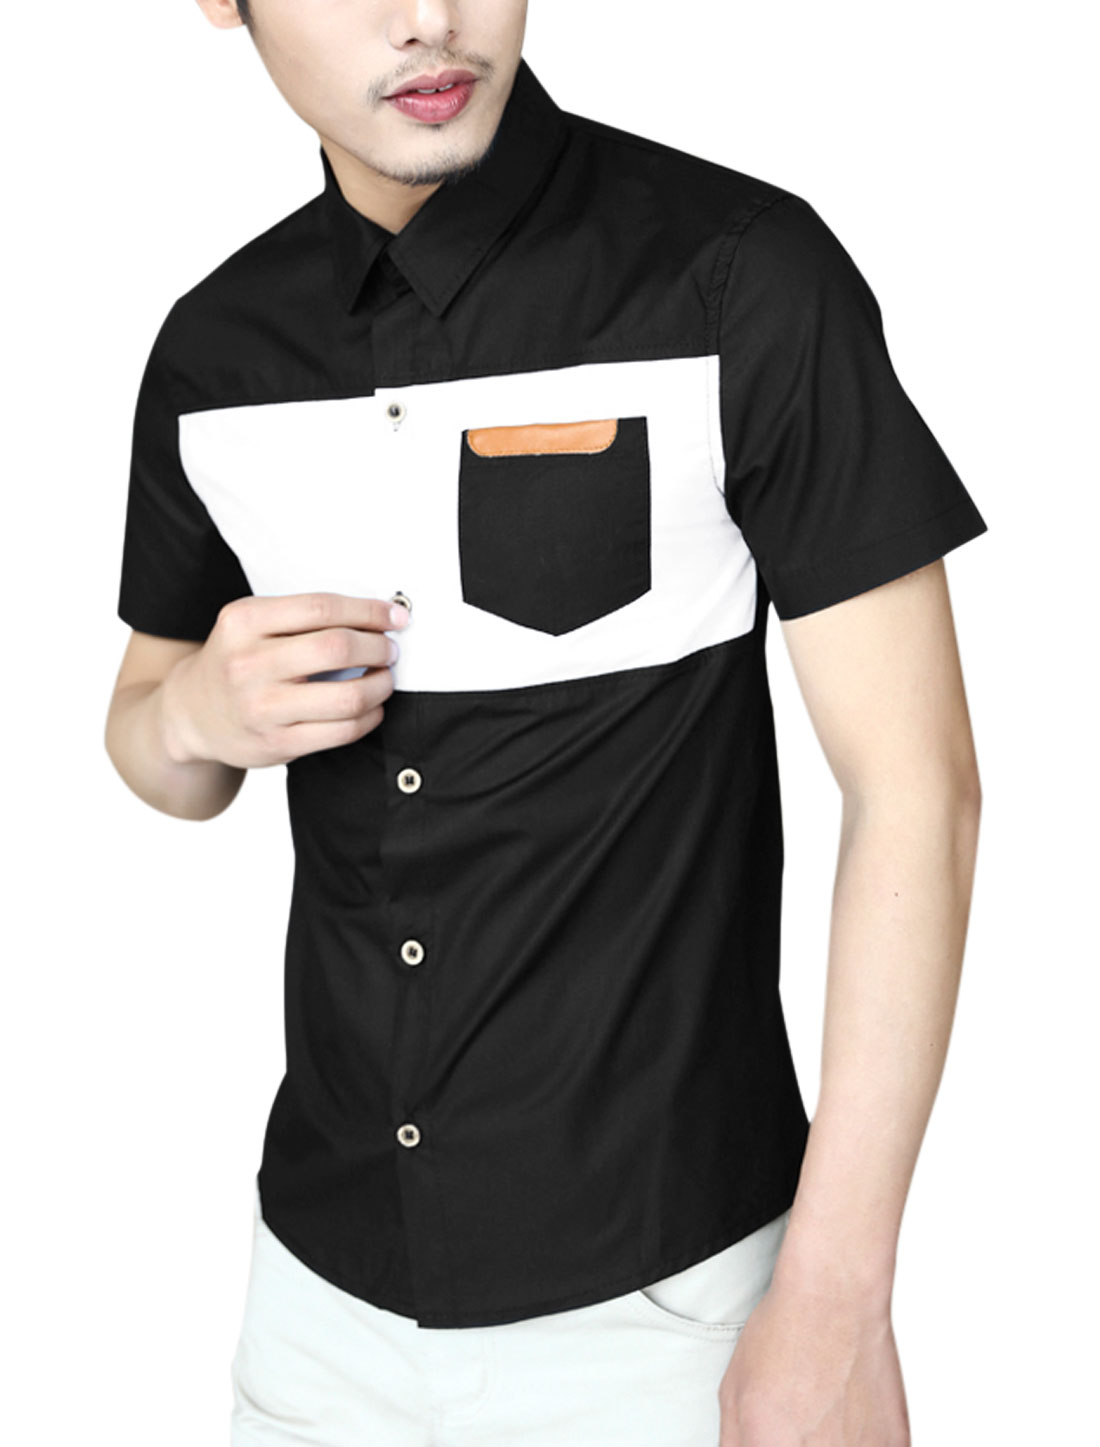 Men Contrast Color One Chest Pocket Single Breasted Shirt Black M